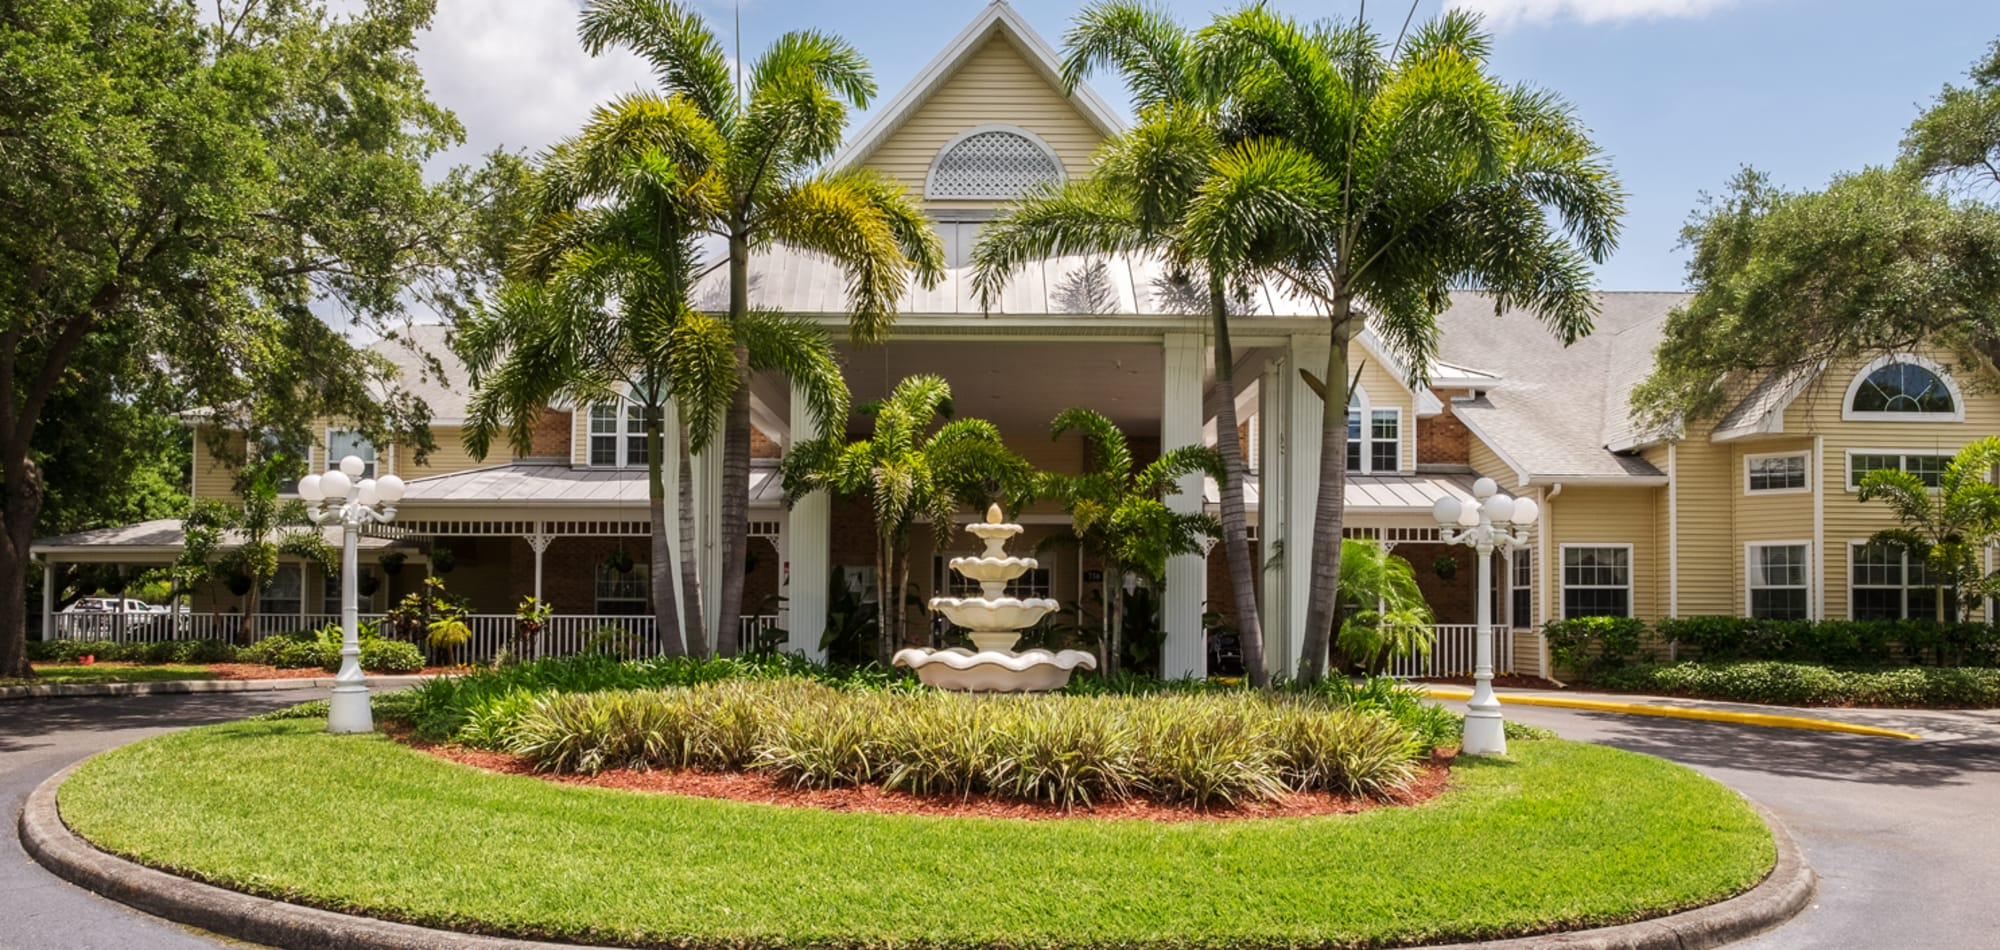 Grand Villa of Largo senior living in Florida